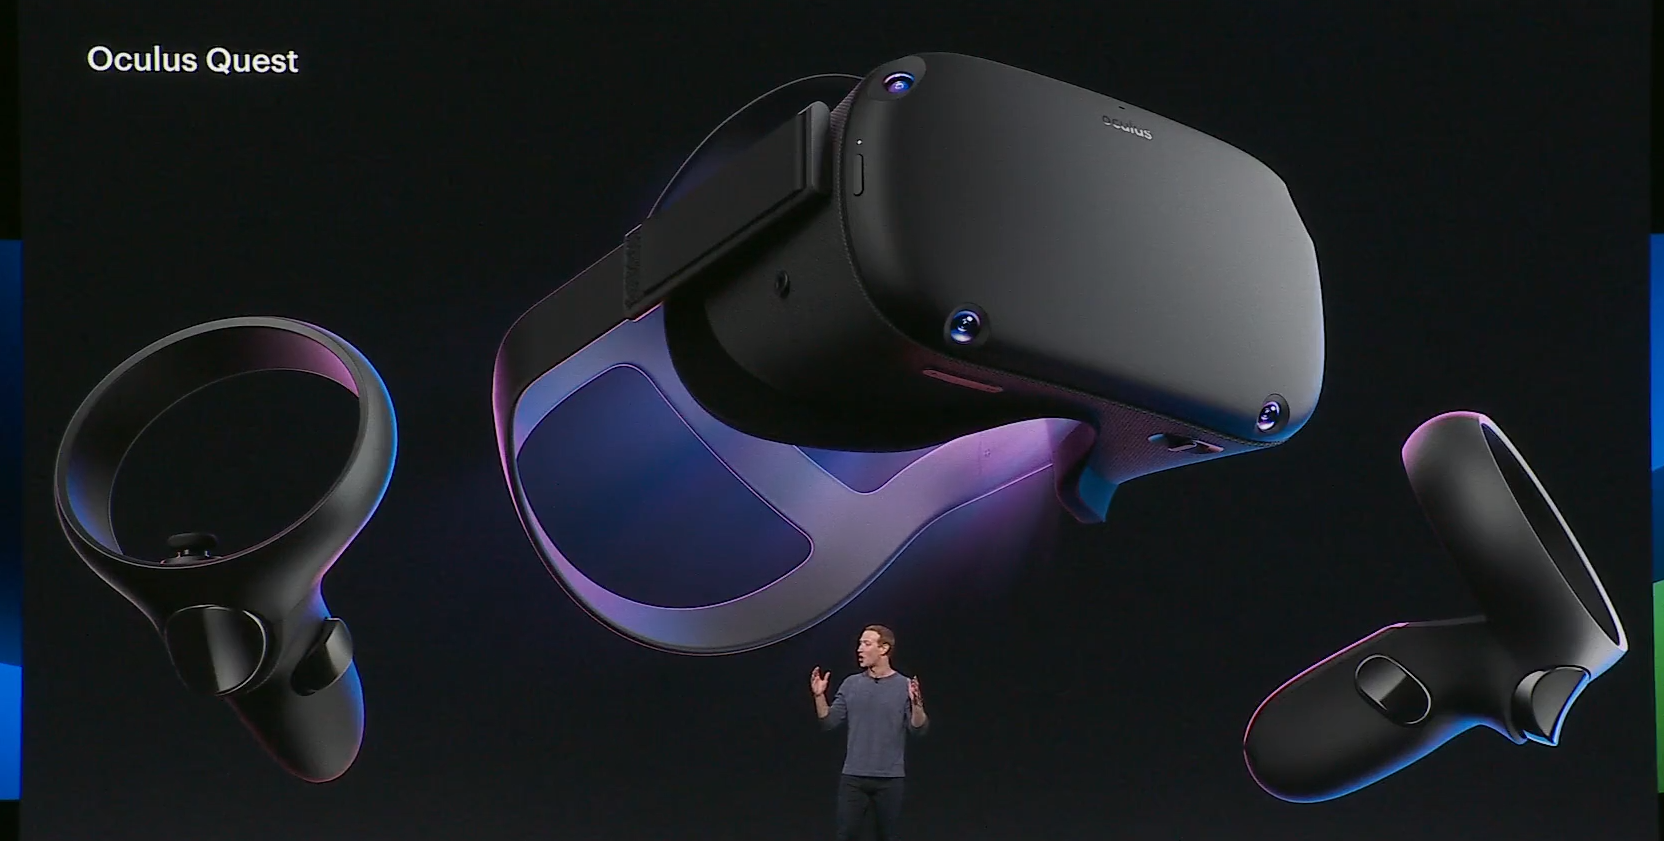 Which Social VR Platforms Will Be Available When the Oculus Quest